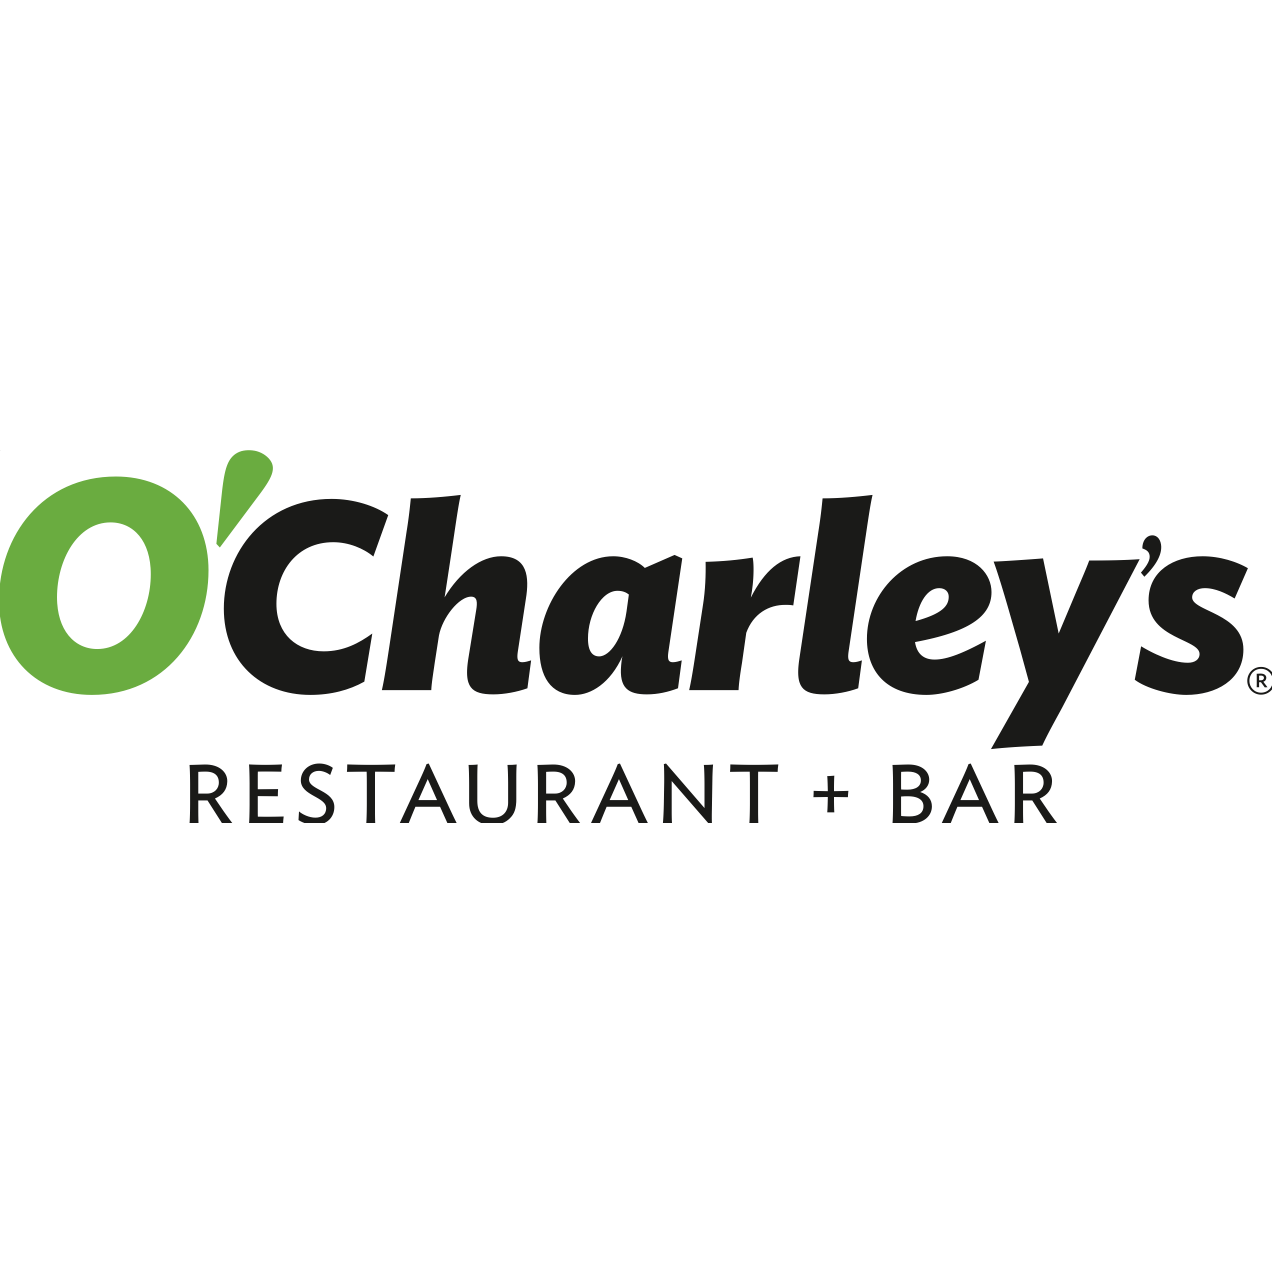 O'Charley's Restaurant & Bar - Smyrna, TN 37167 - (615)220-1772 | ShowMeLocal.com